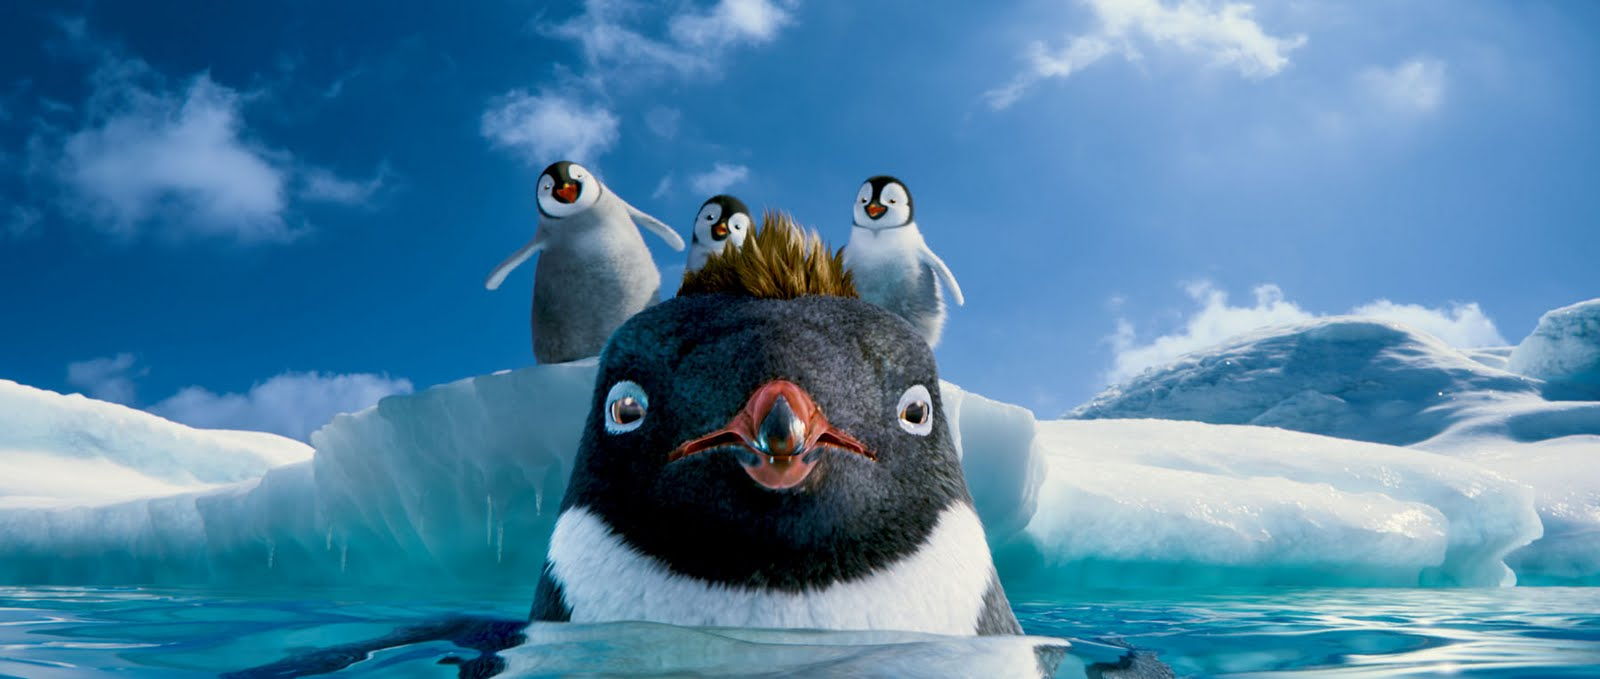 happy feet 2 pictures : teaser trailer